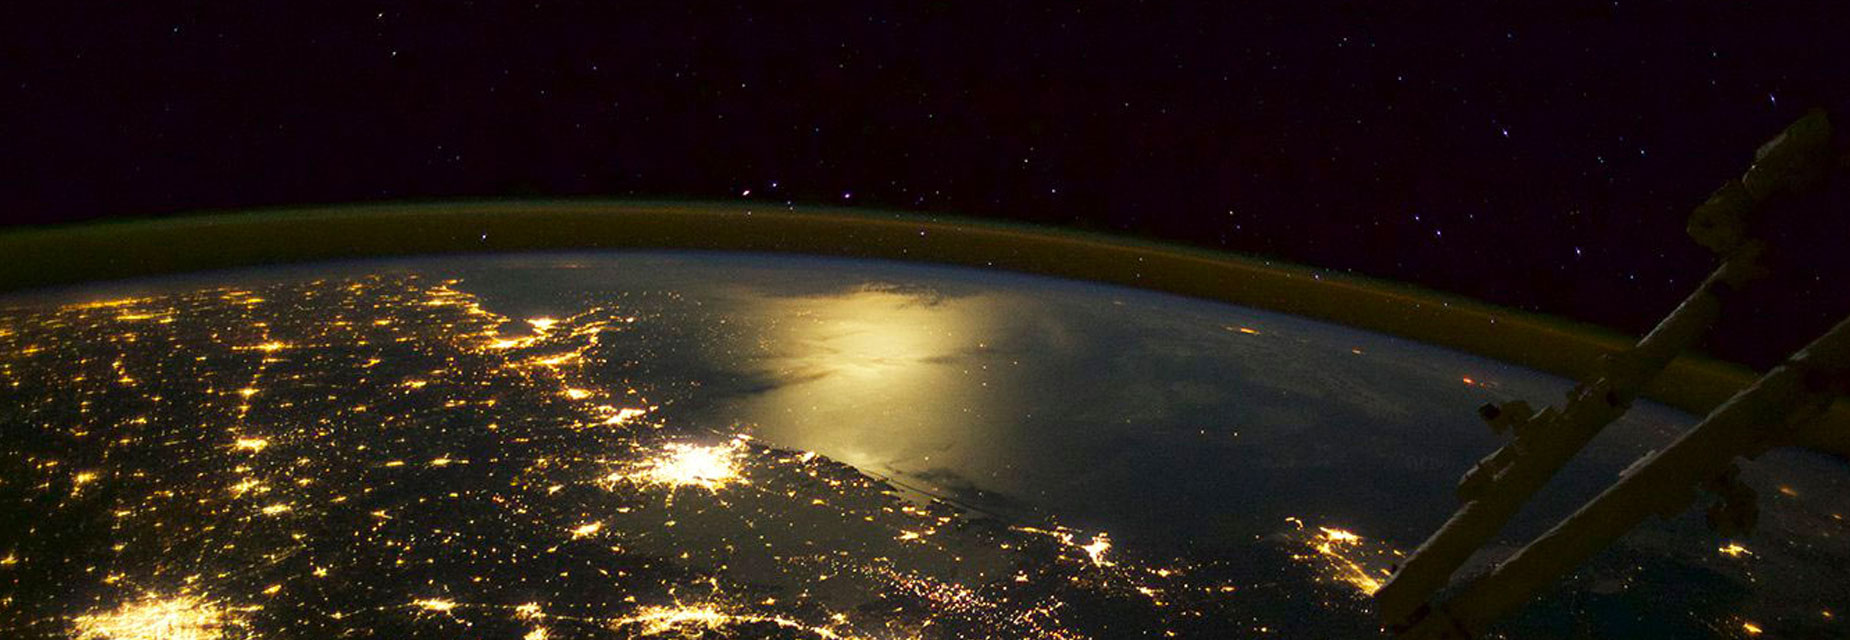 A still image from the Imax film 'A Beautiful Planet 3d' depicting earth from space with lights on showing the cities below